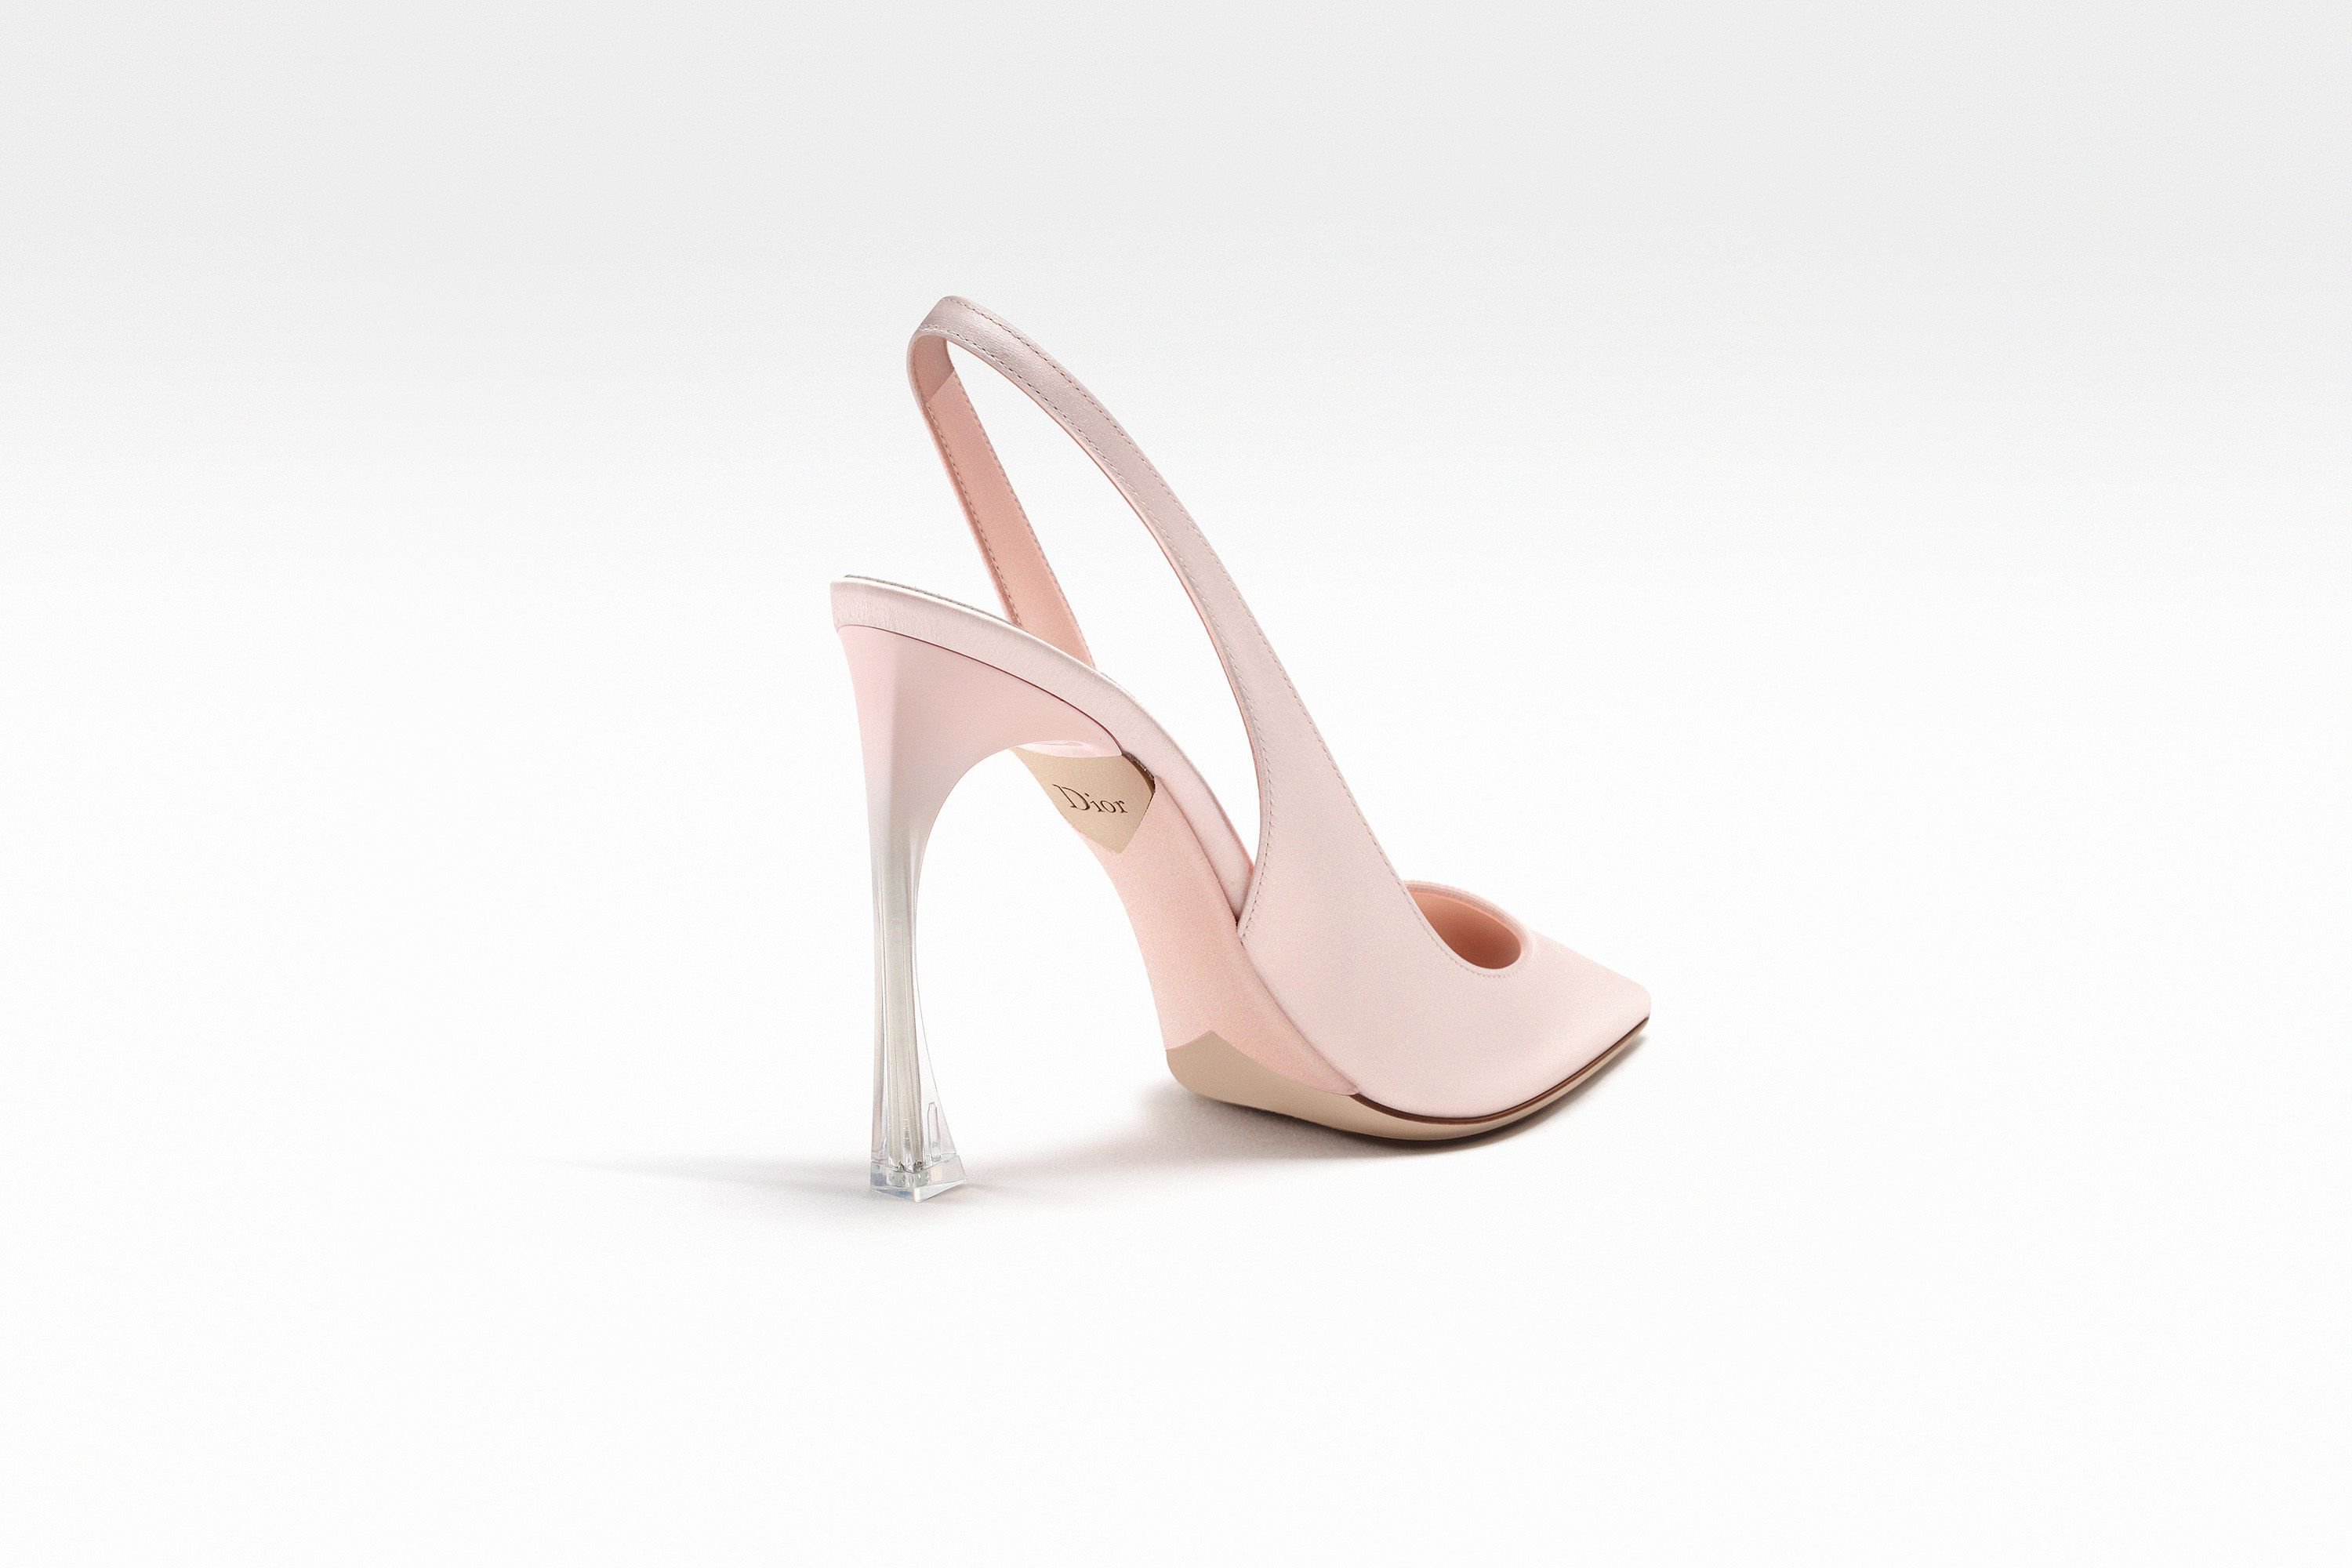 Sling back in pale pink satin with